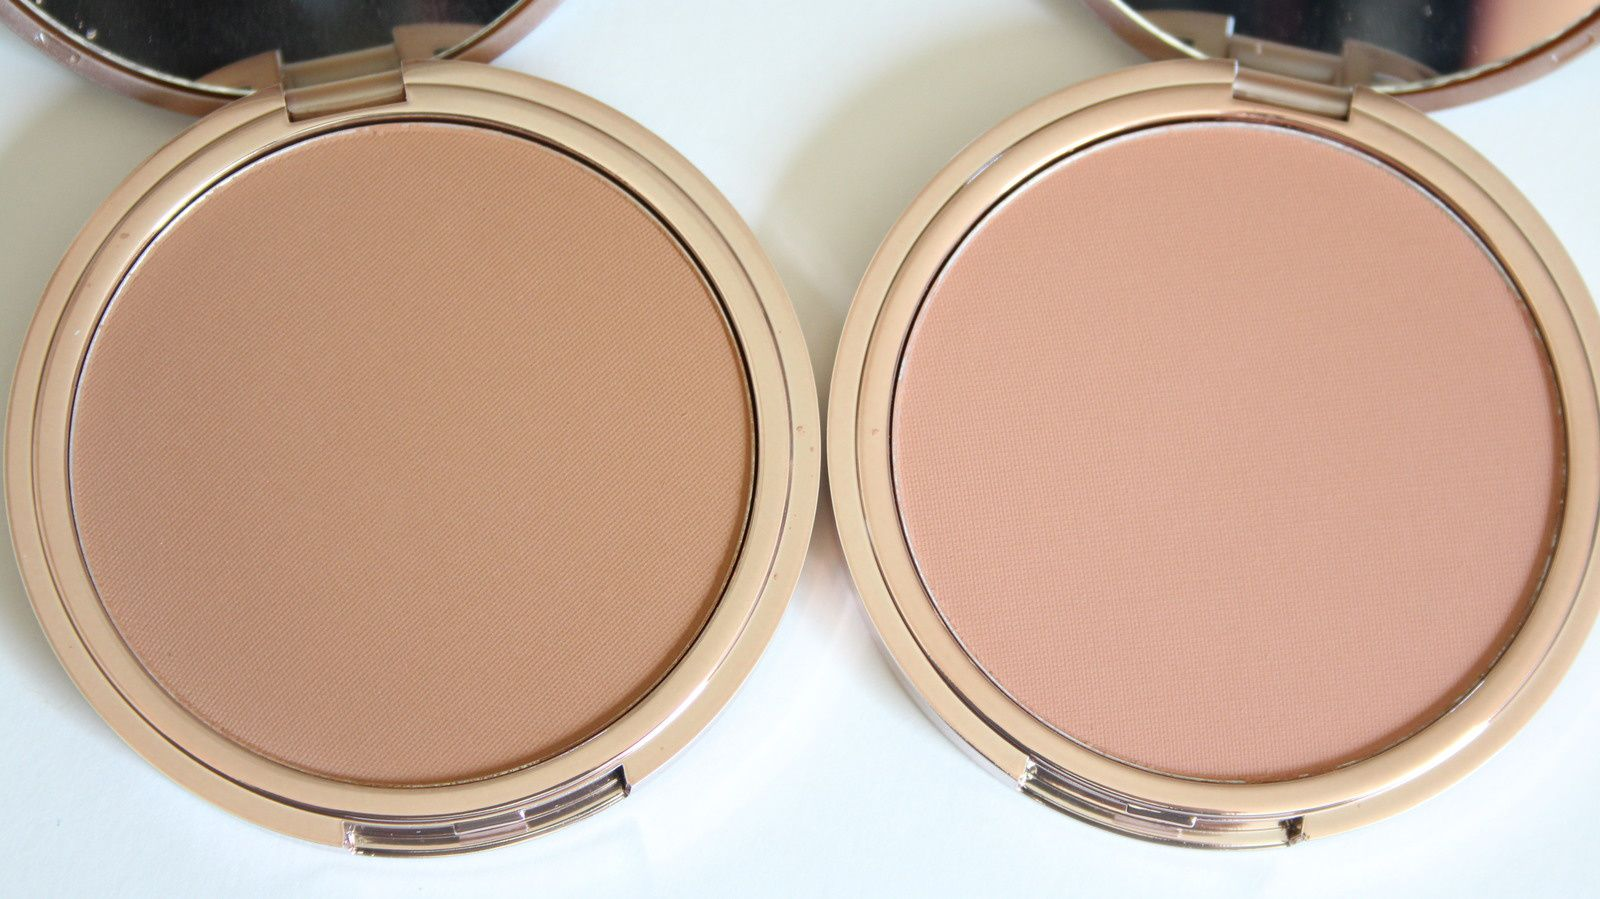 NEW Beached Bronzer x Urban Decay REVIEW & SWATCHES